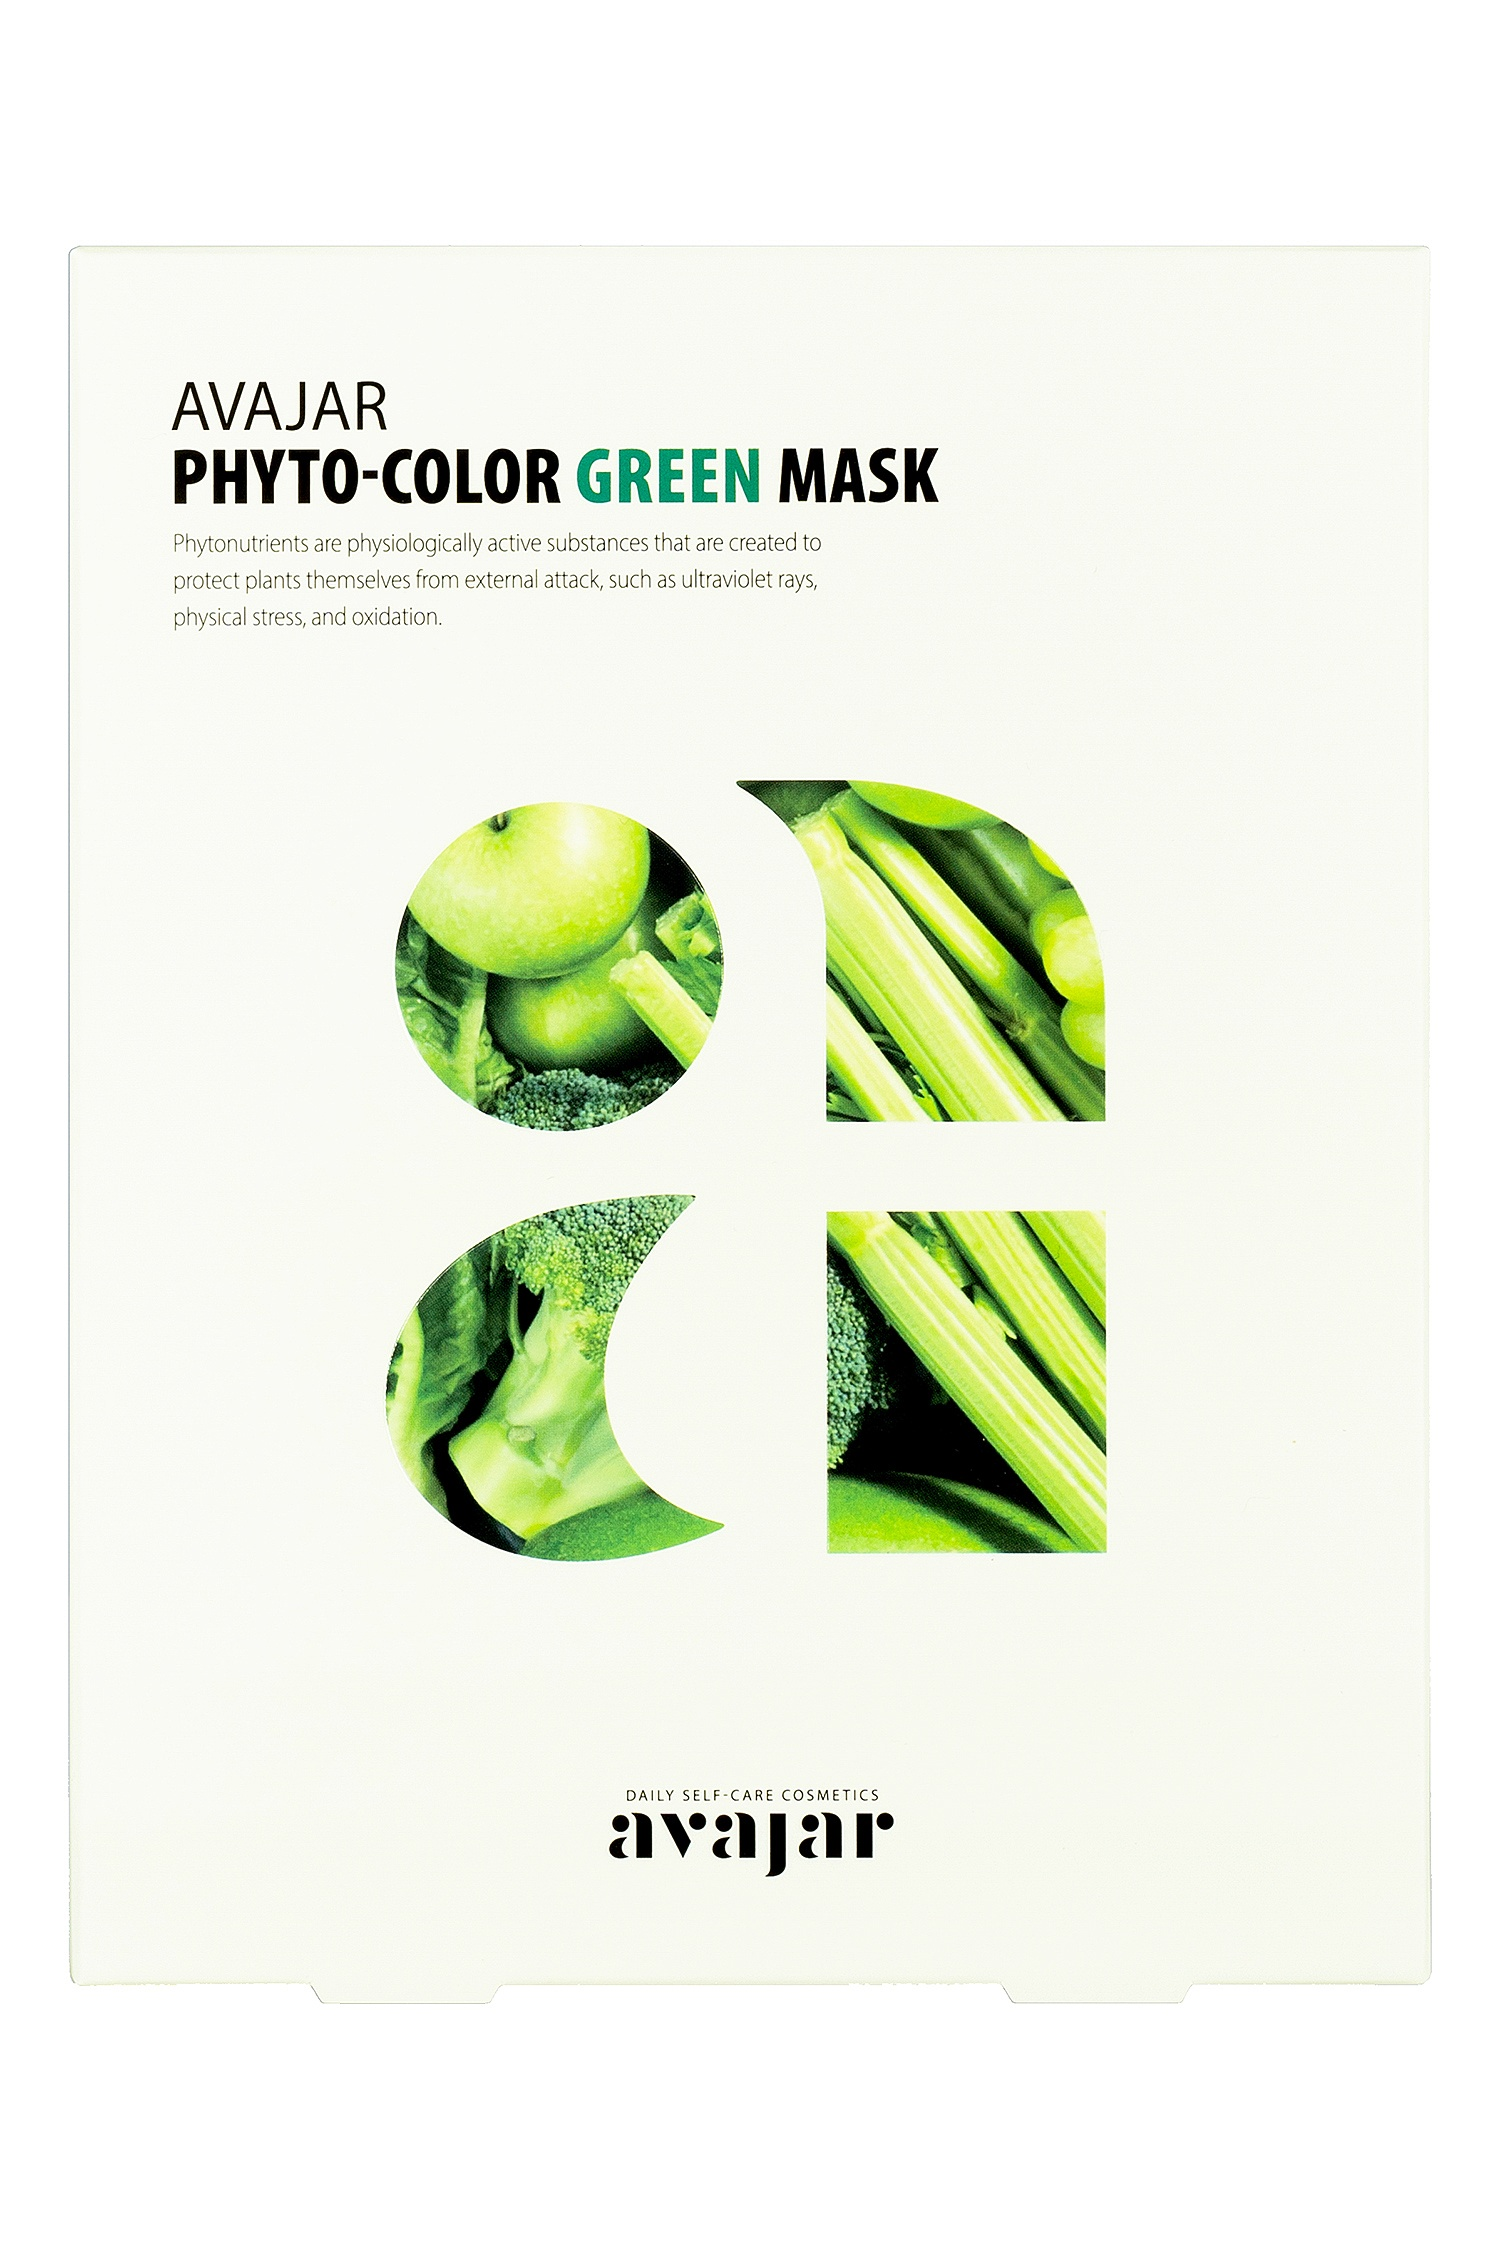 Avajar Phyto-Color Green Mask- 1 уп. 10 шт. Avajar (фото)